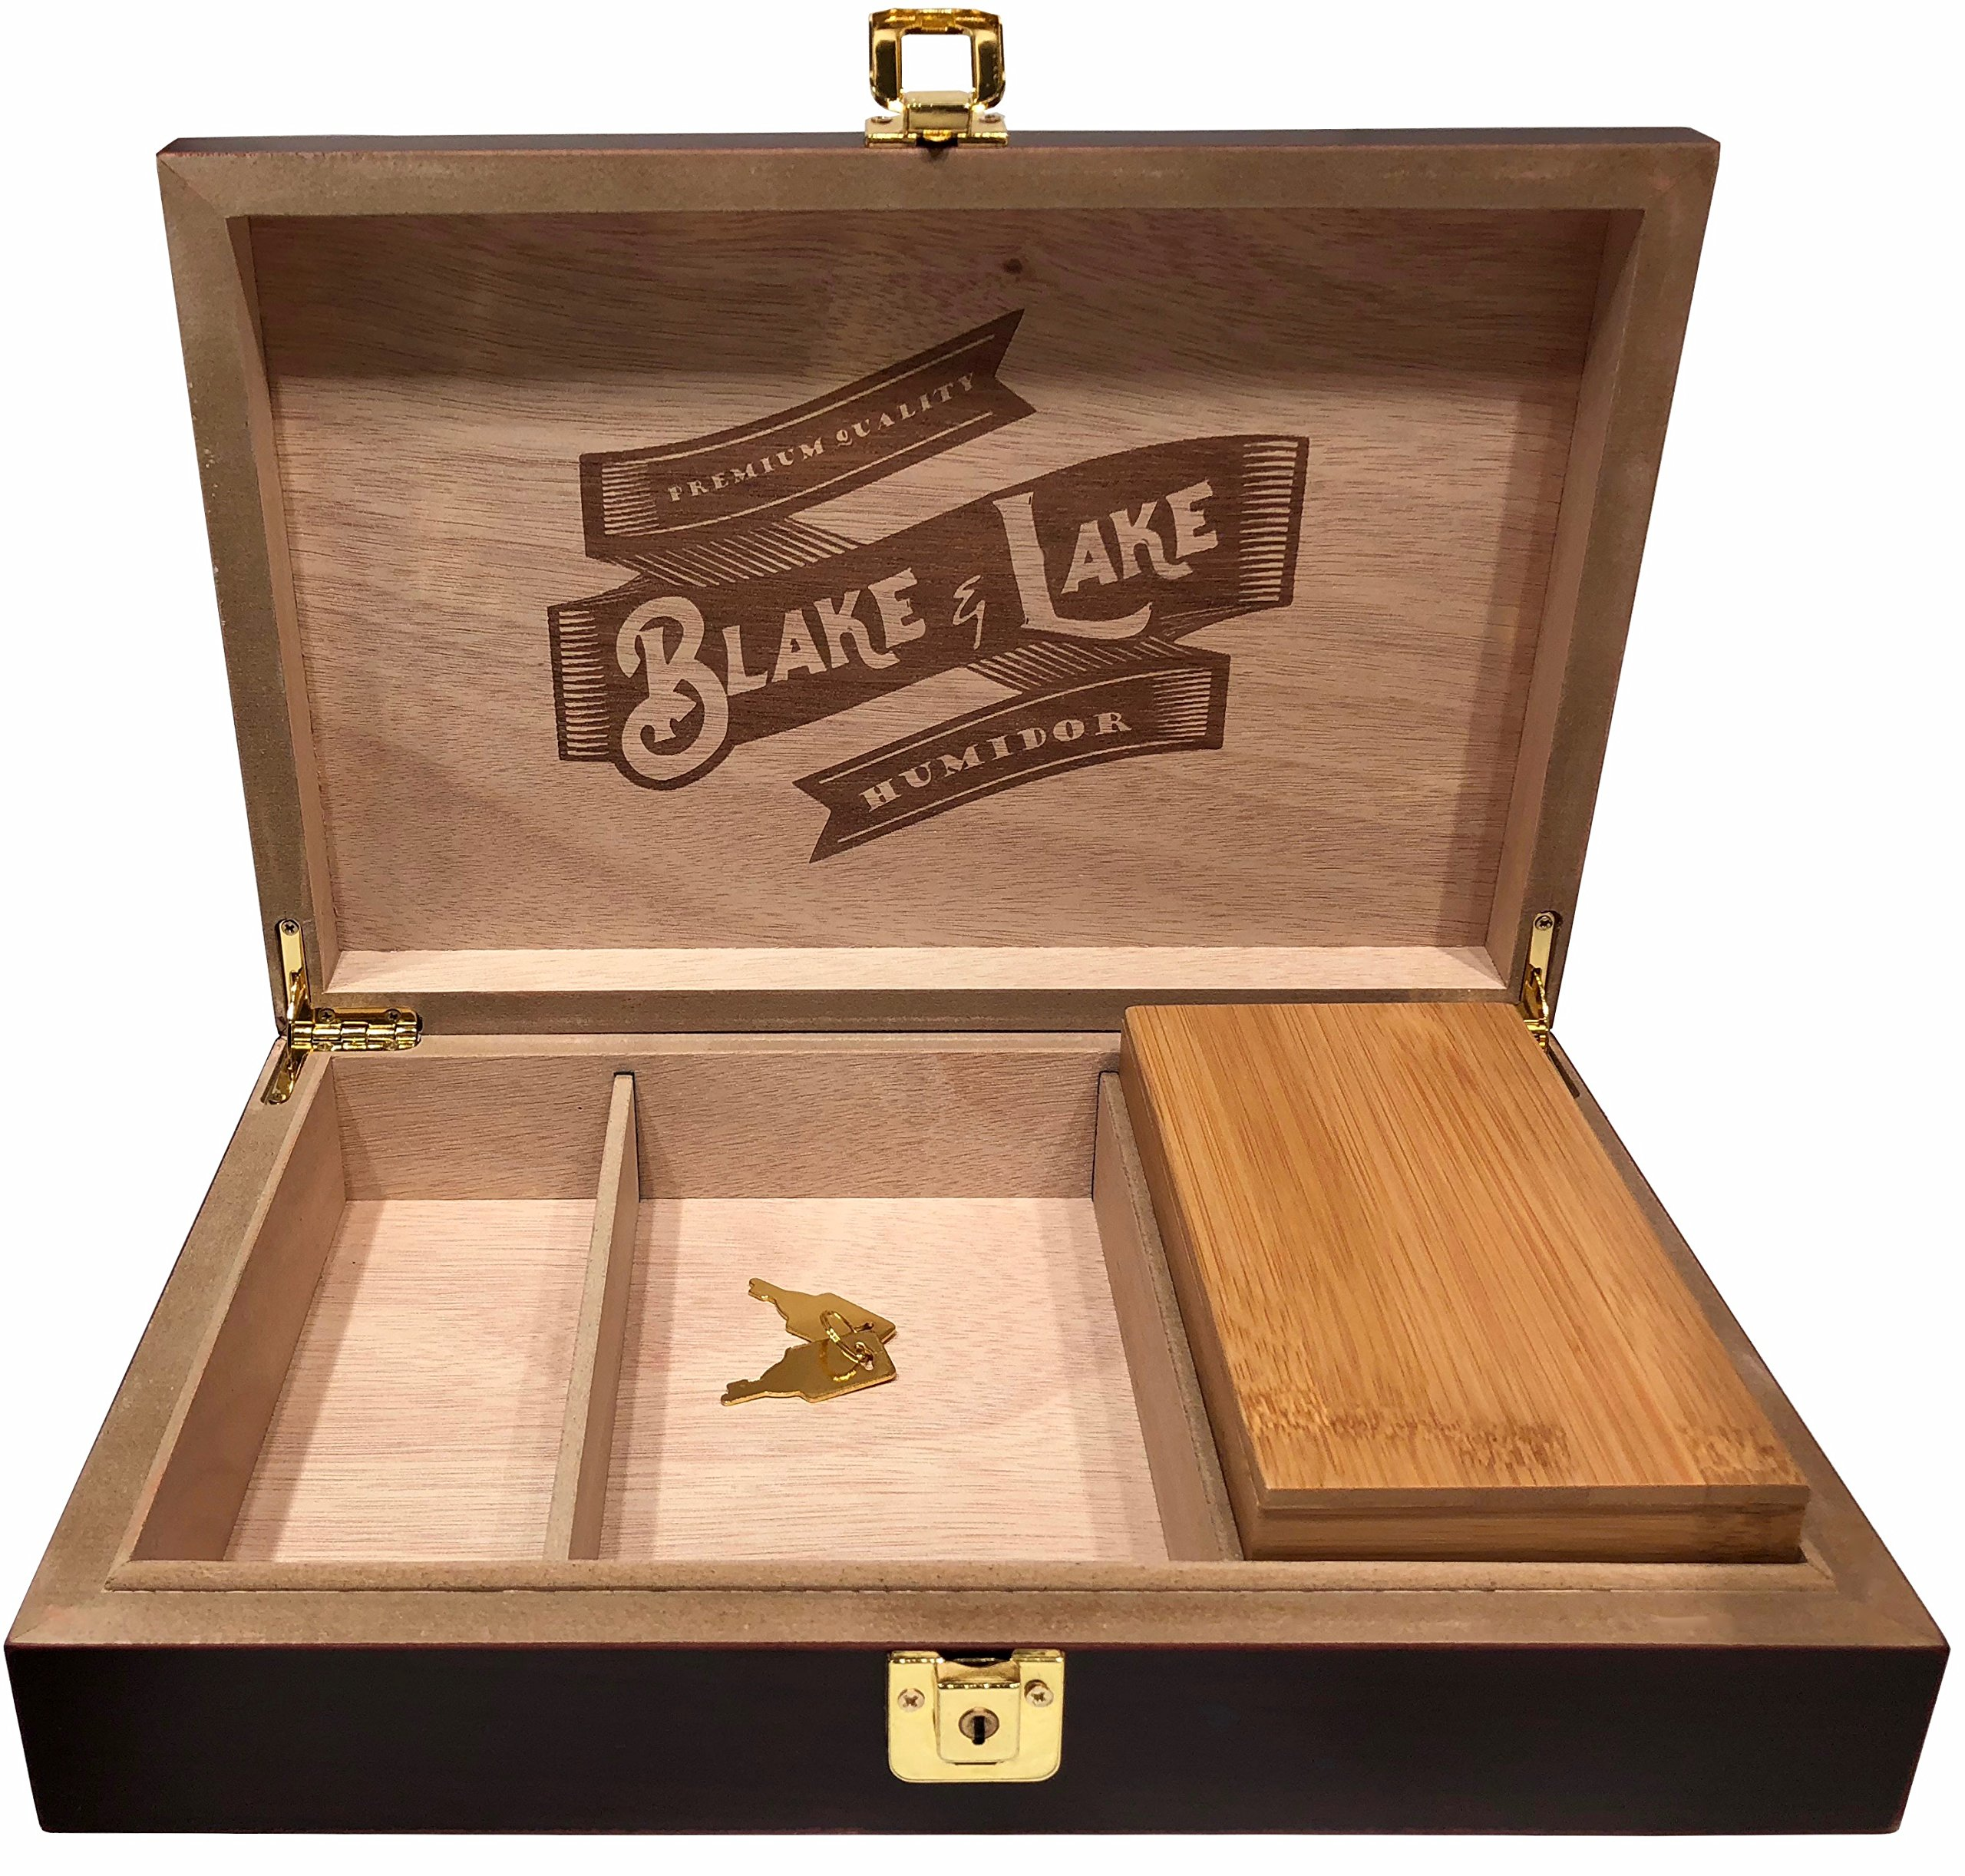 Blake & Lake Wood Stash Box with Lock - Wood Lock Box with Rolling Tray - Box with Lock and key - Dark Brown Discrete Wooden Boxes